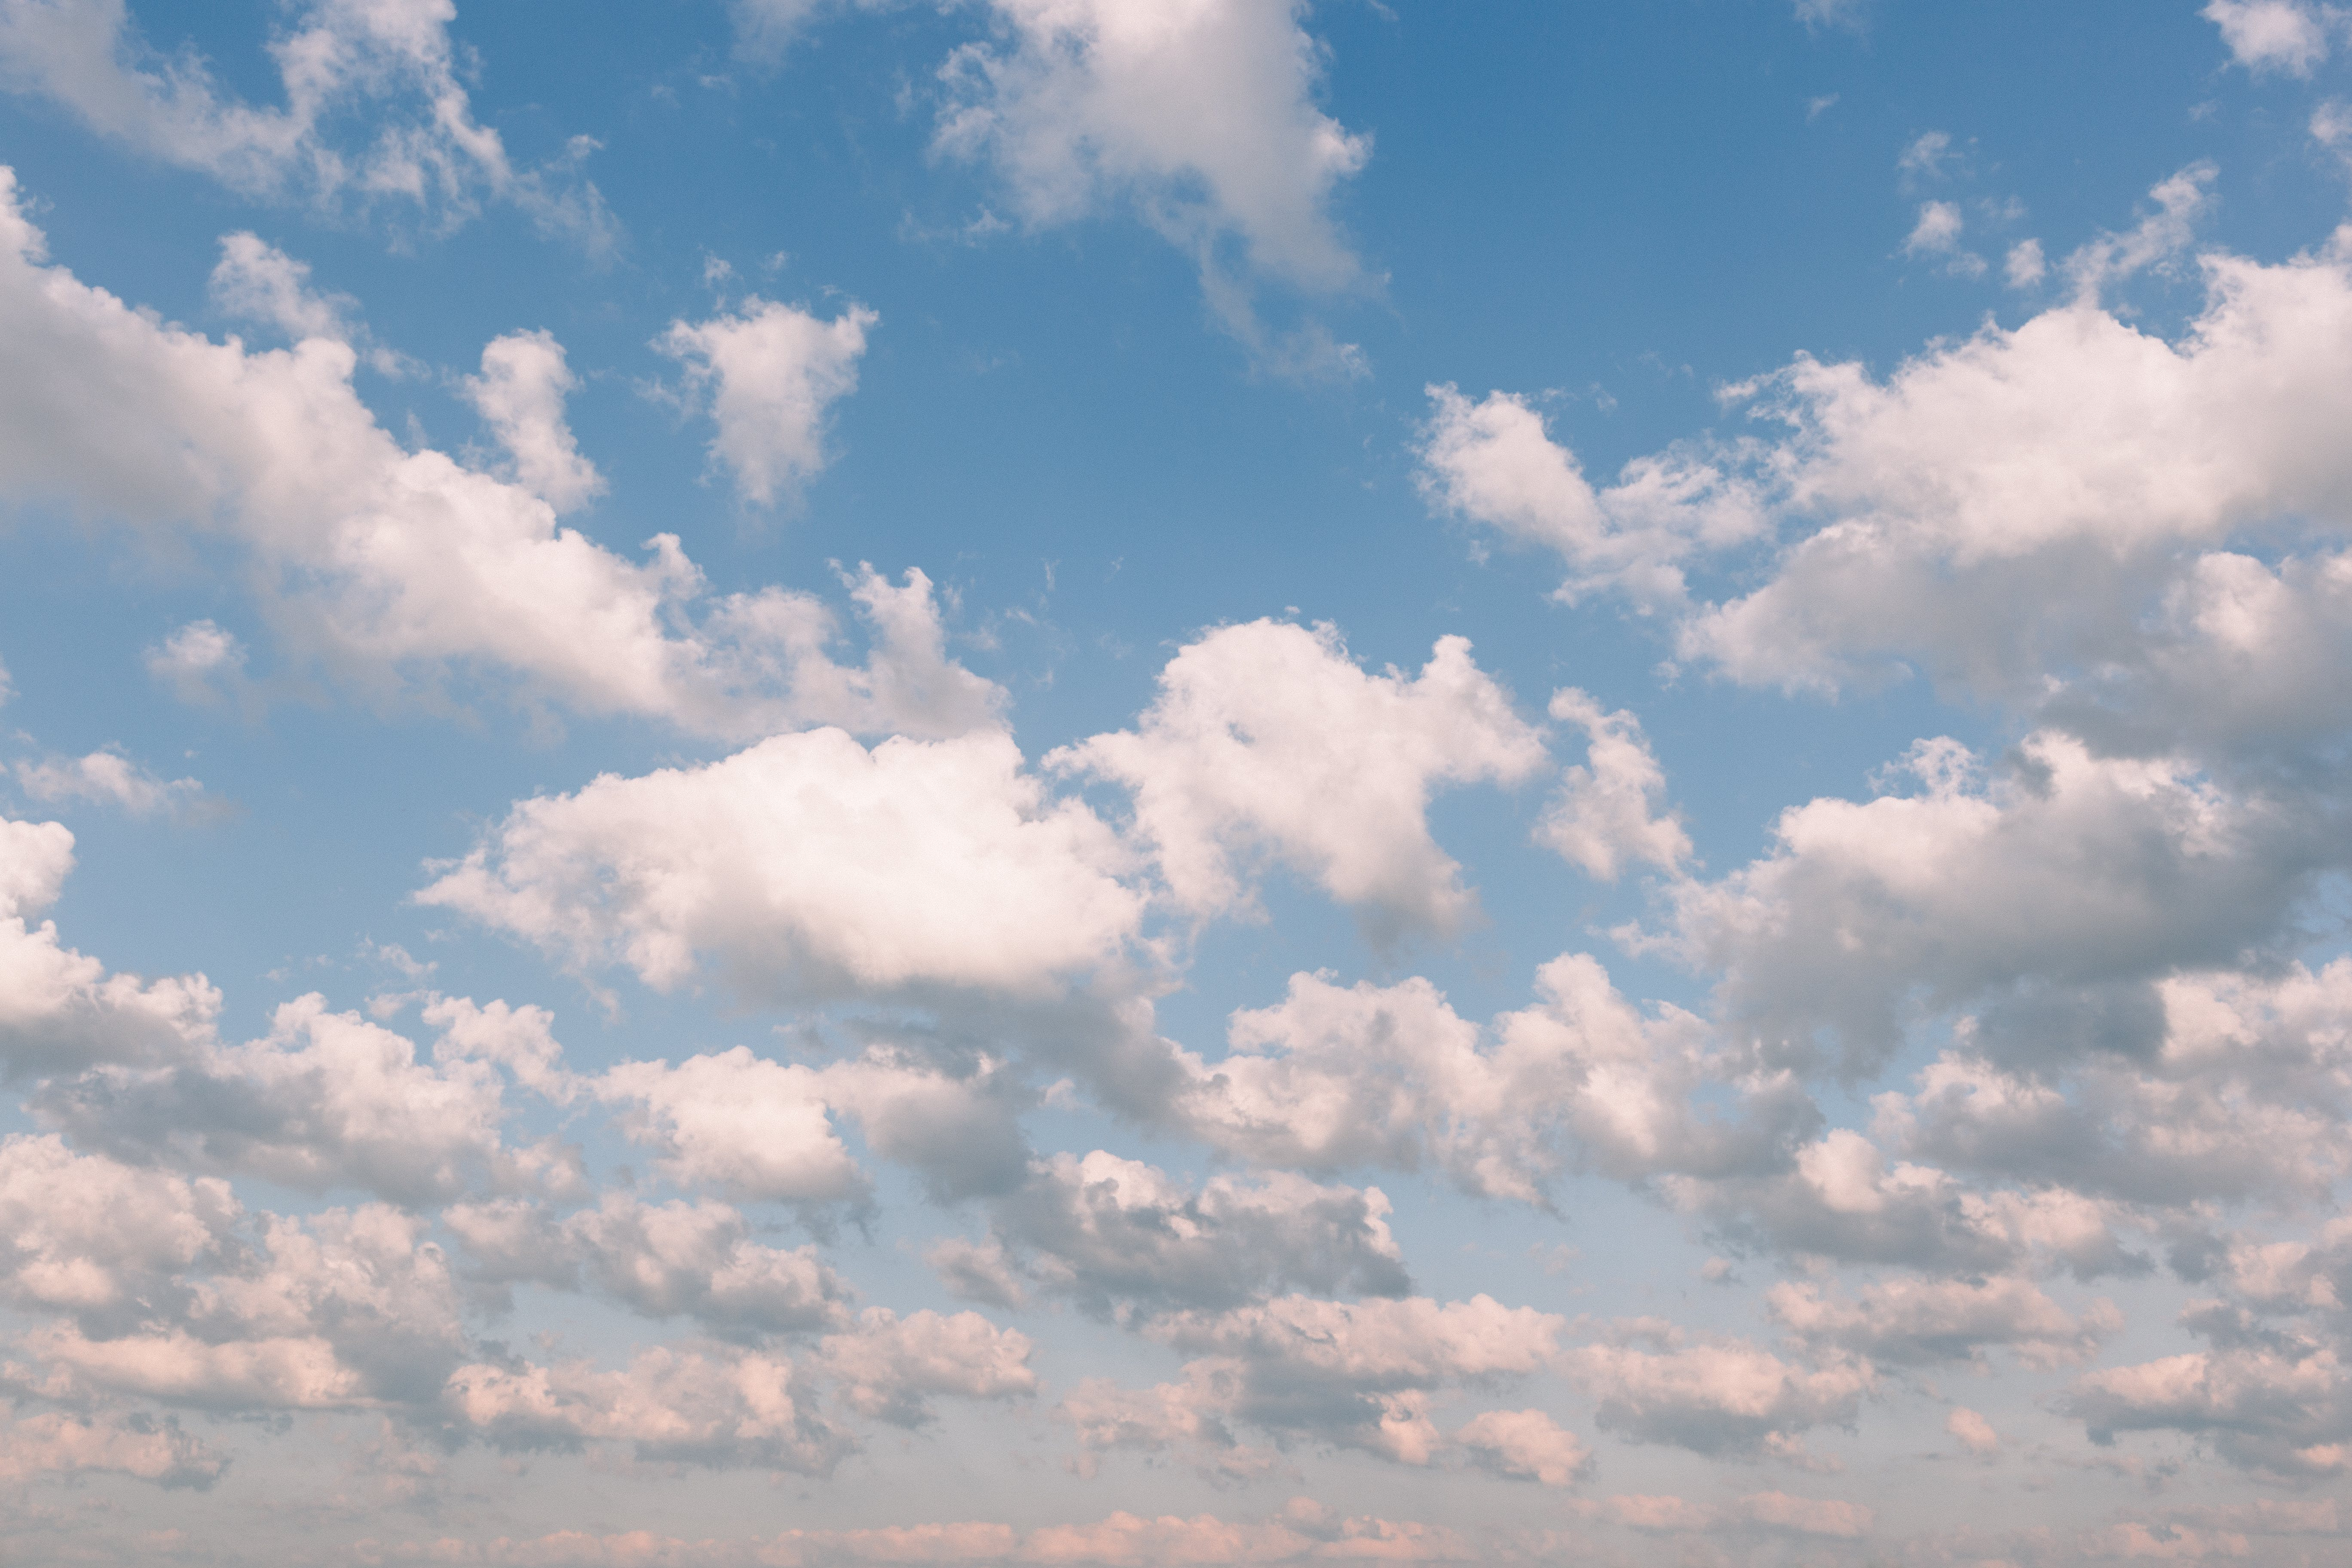 blue sky, cloudiness, clouds